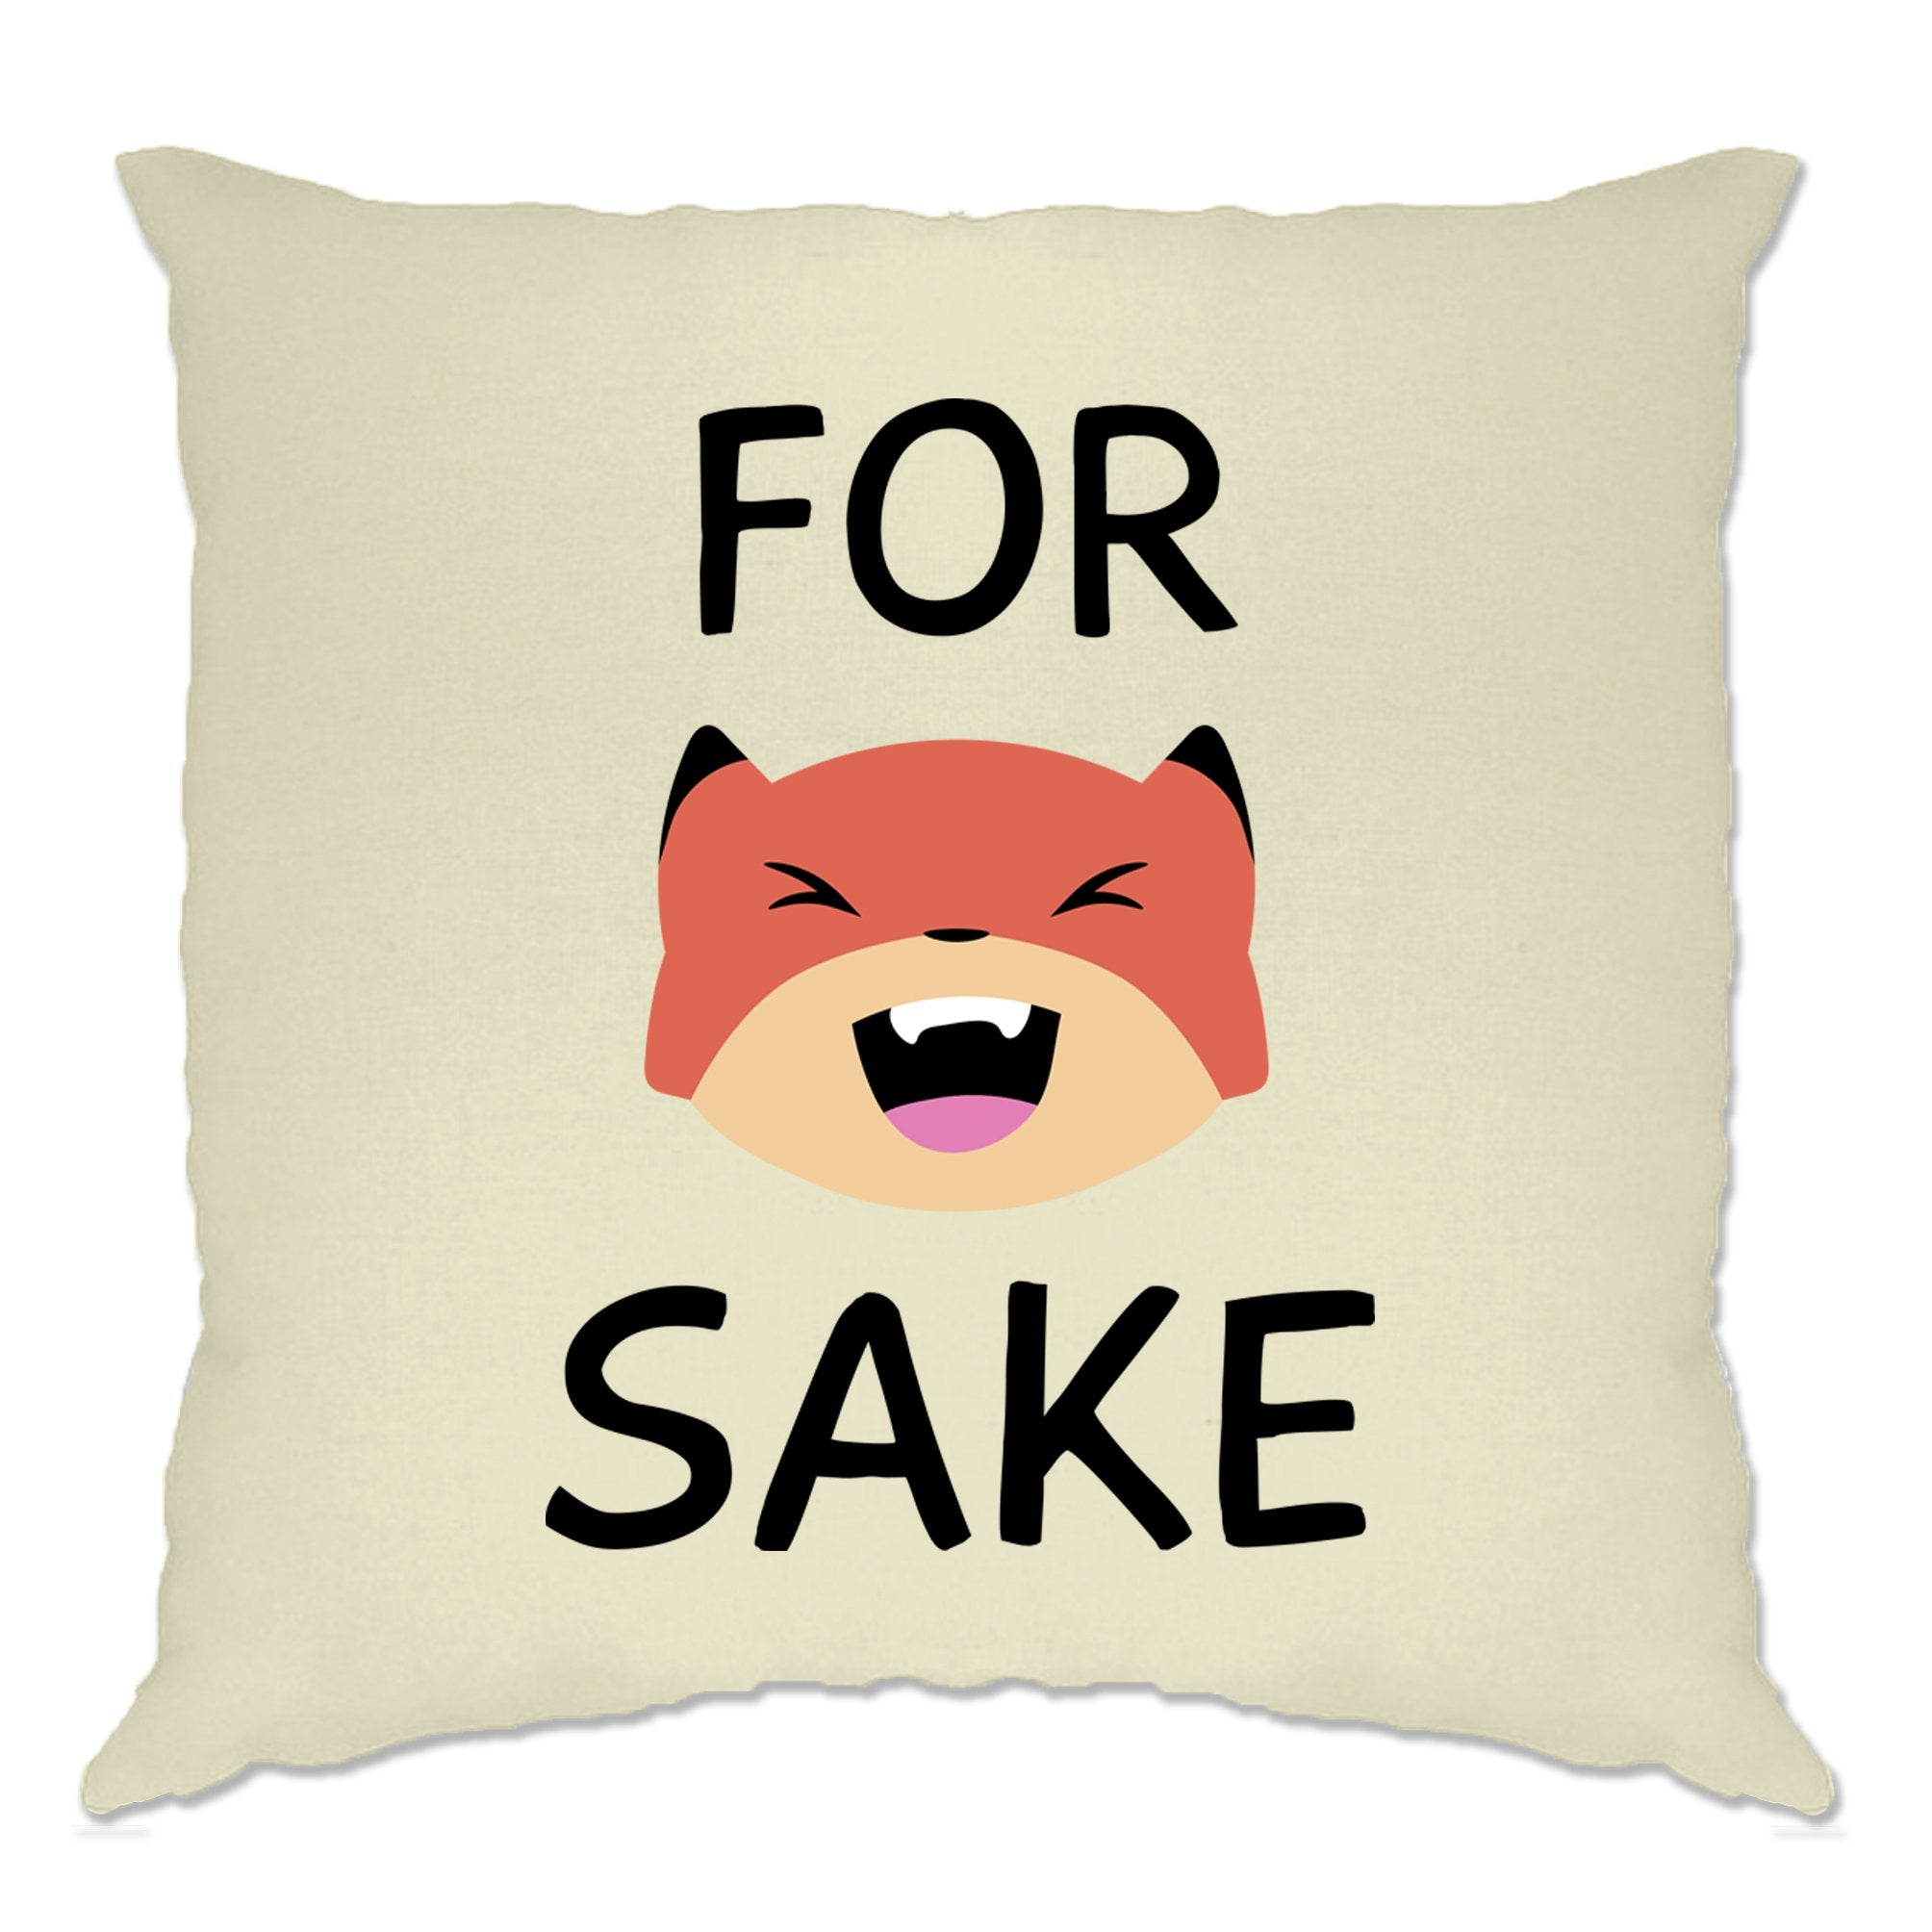 Novelty Animal Pun Cushion Cover For Fox Sake Joke